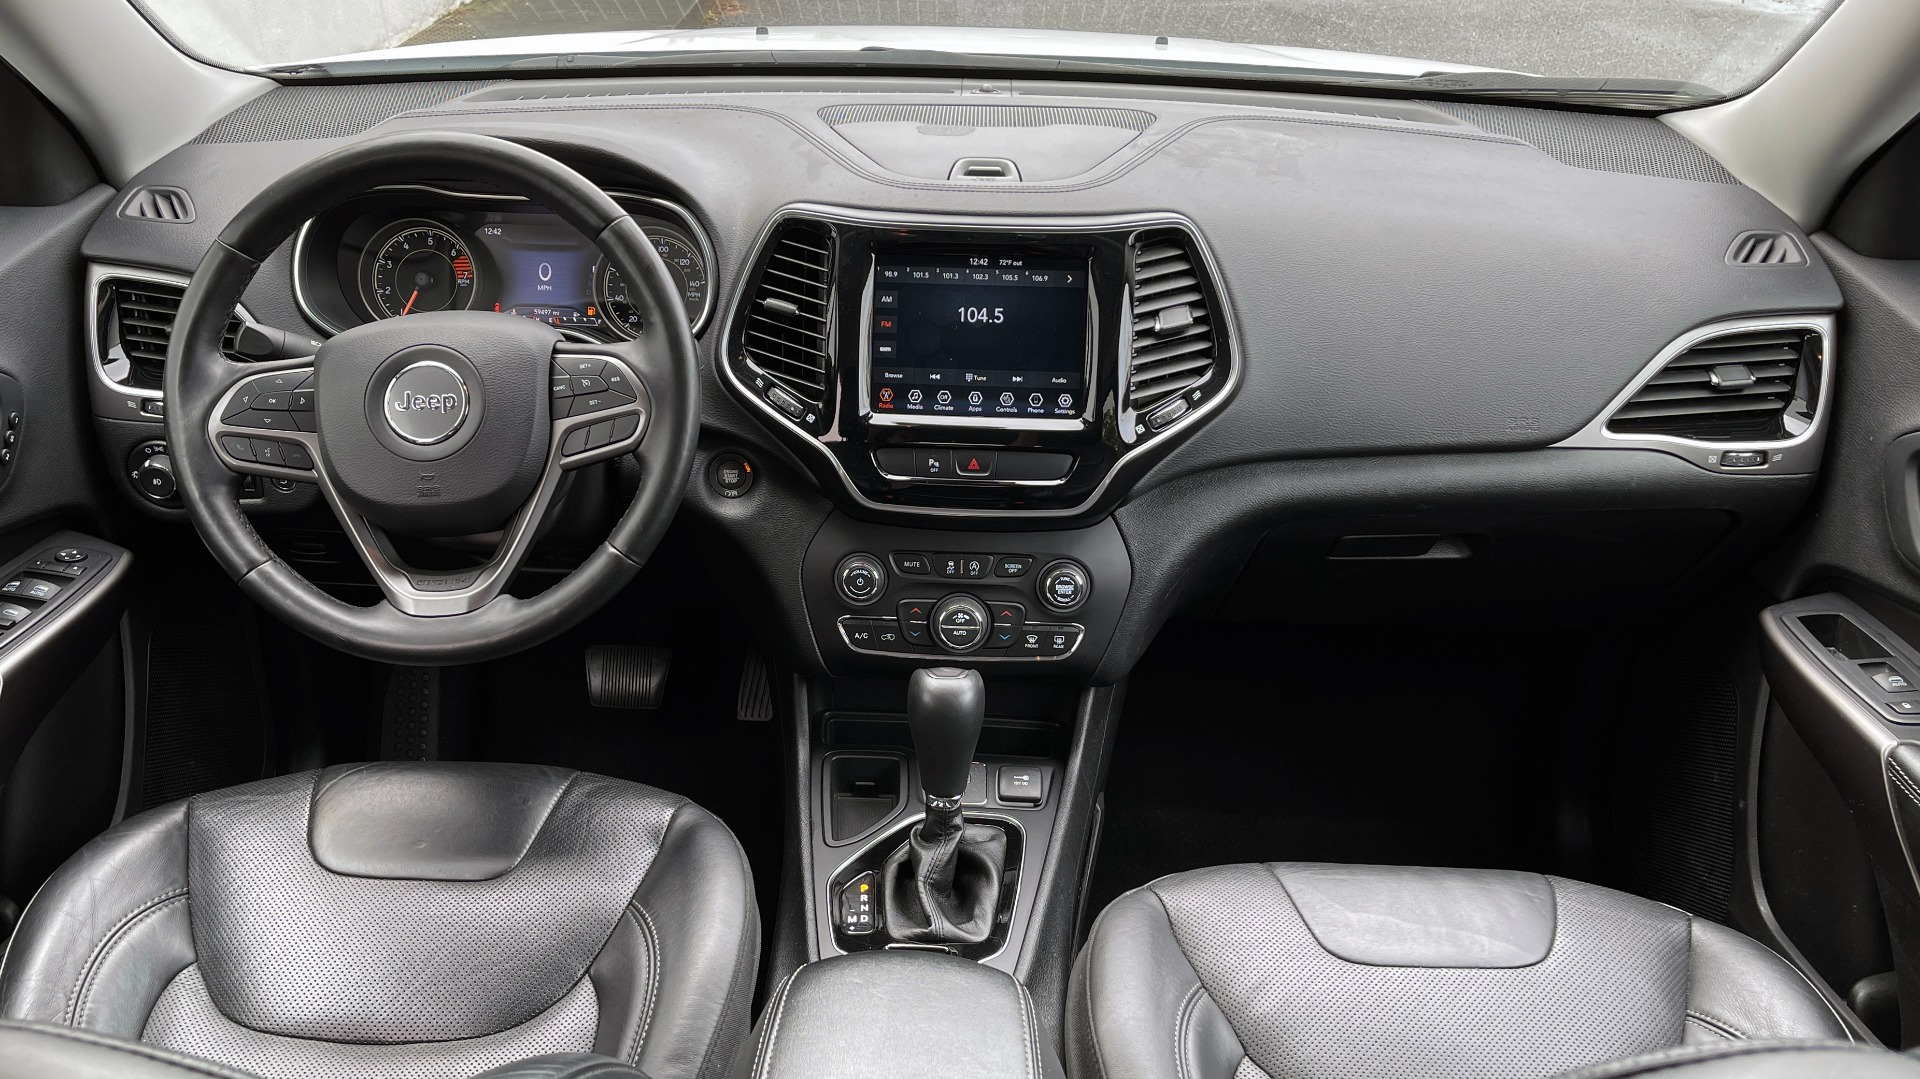 Used 2019 Jeep CHEROKEE LIMITED 2.4L / FWD / APPLE CARPLAY / KEYLESS-GO / REARVIEW for sale $24,395 at Formula Imports in Charlotte NC 28227 52